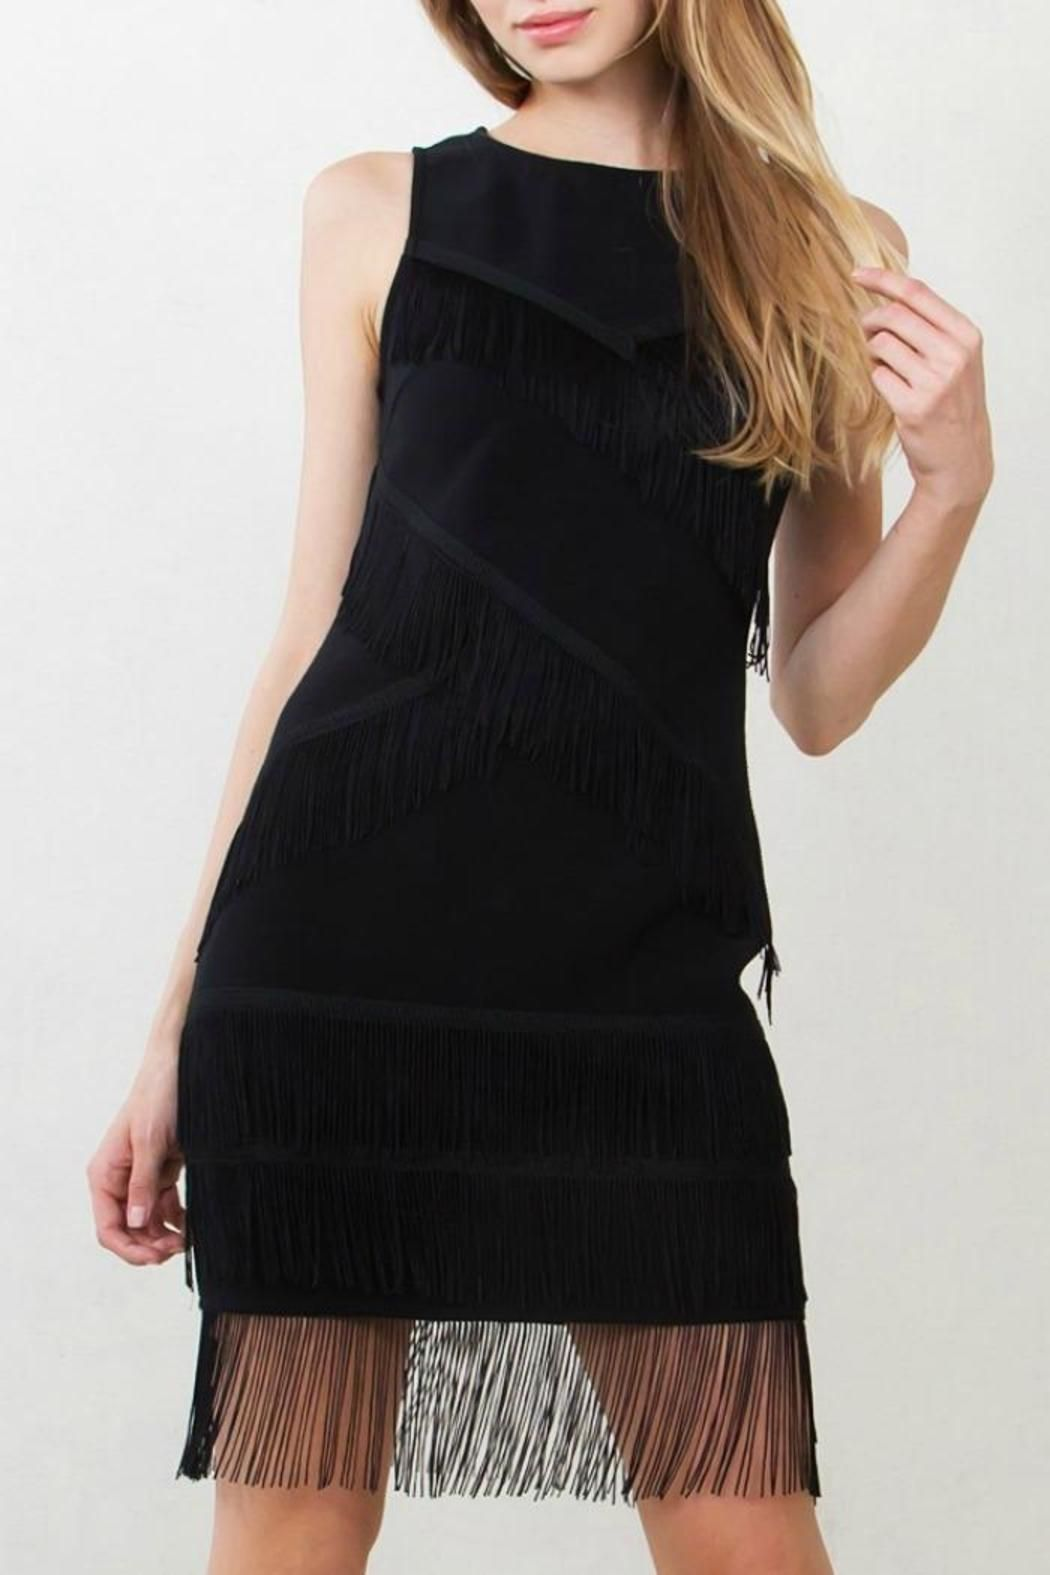 e8b0e18a0f Little black dress with fringe detail. Hidden back zipper and clasp  closure. Pair with a fur coat and heels for a fun party look!